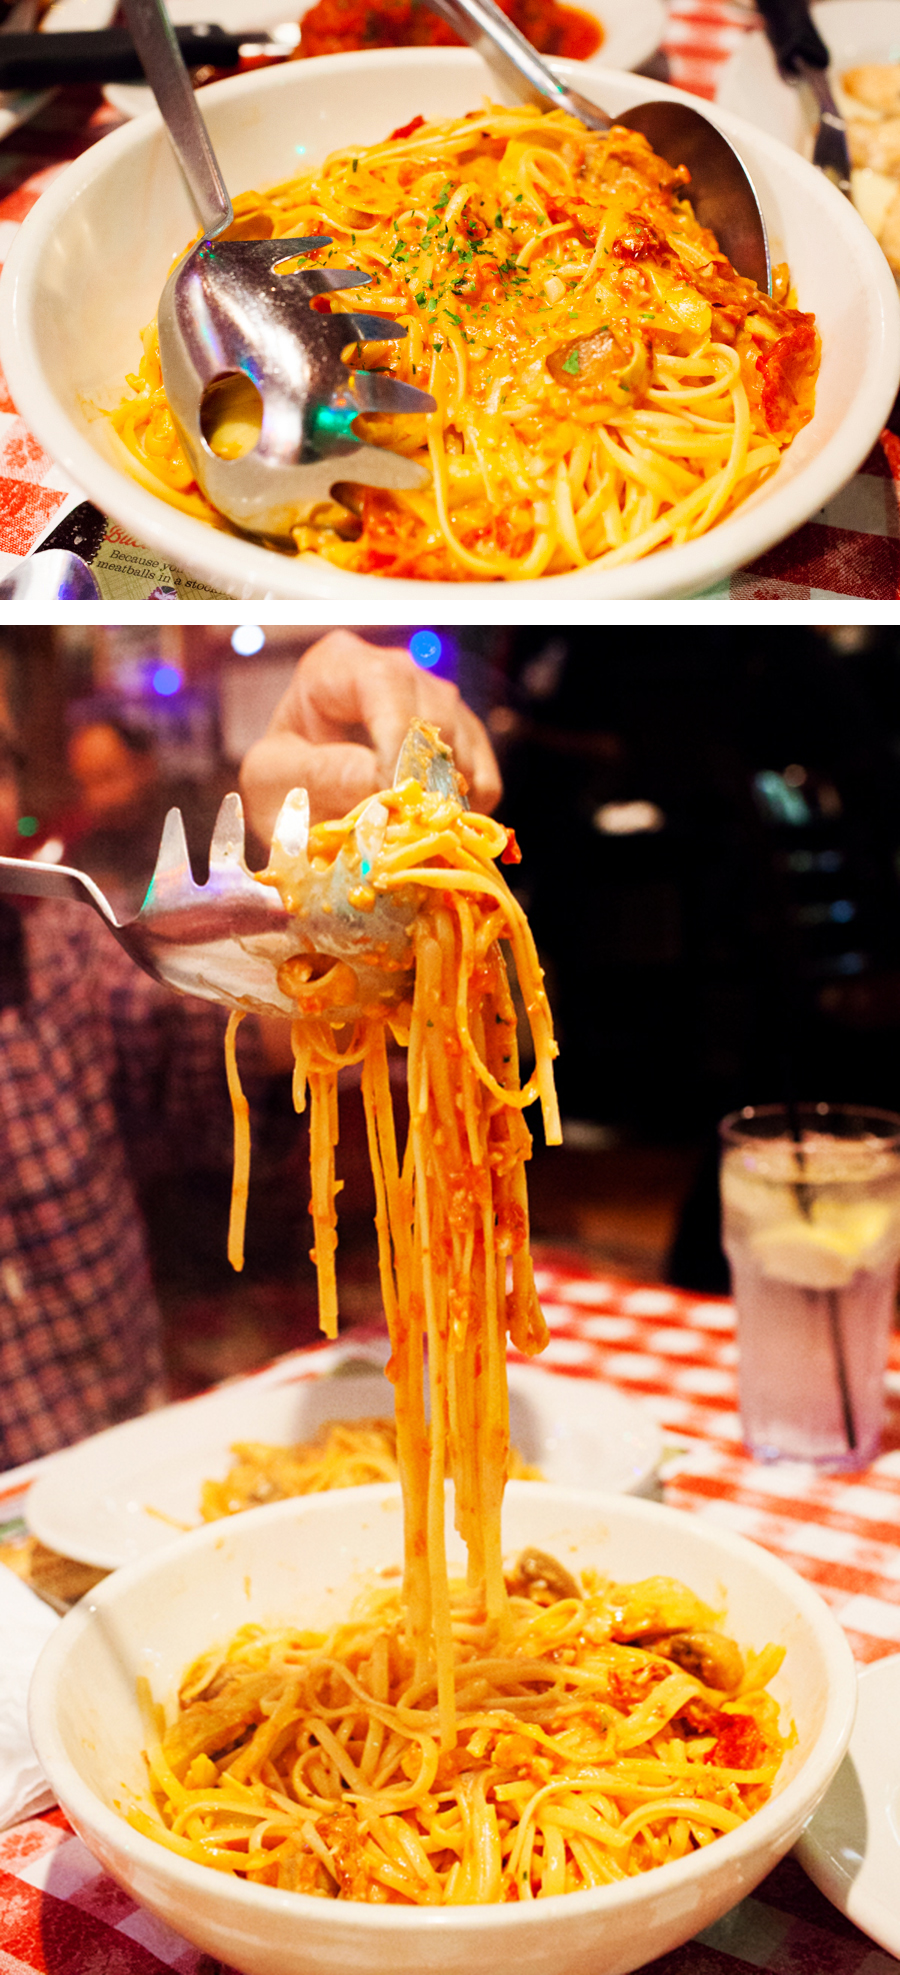 Buca di beppo, create your own pasta, linguine, rosa sauce